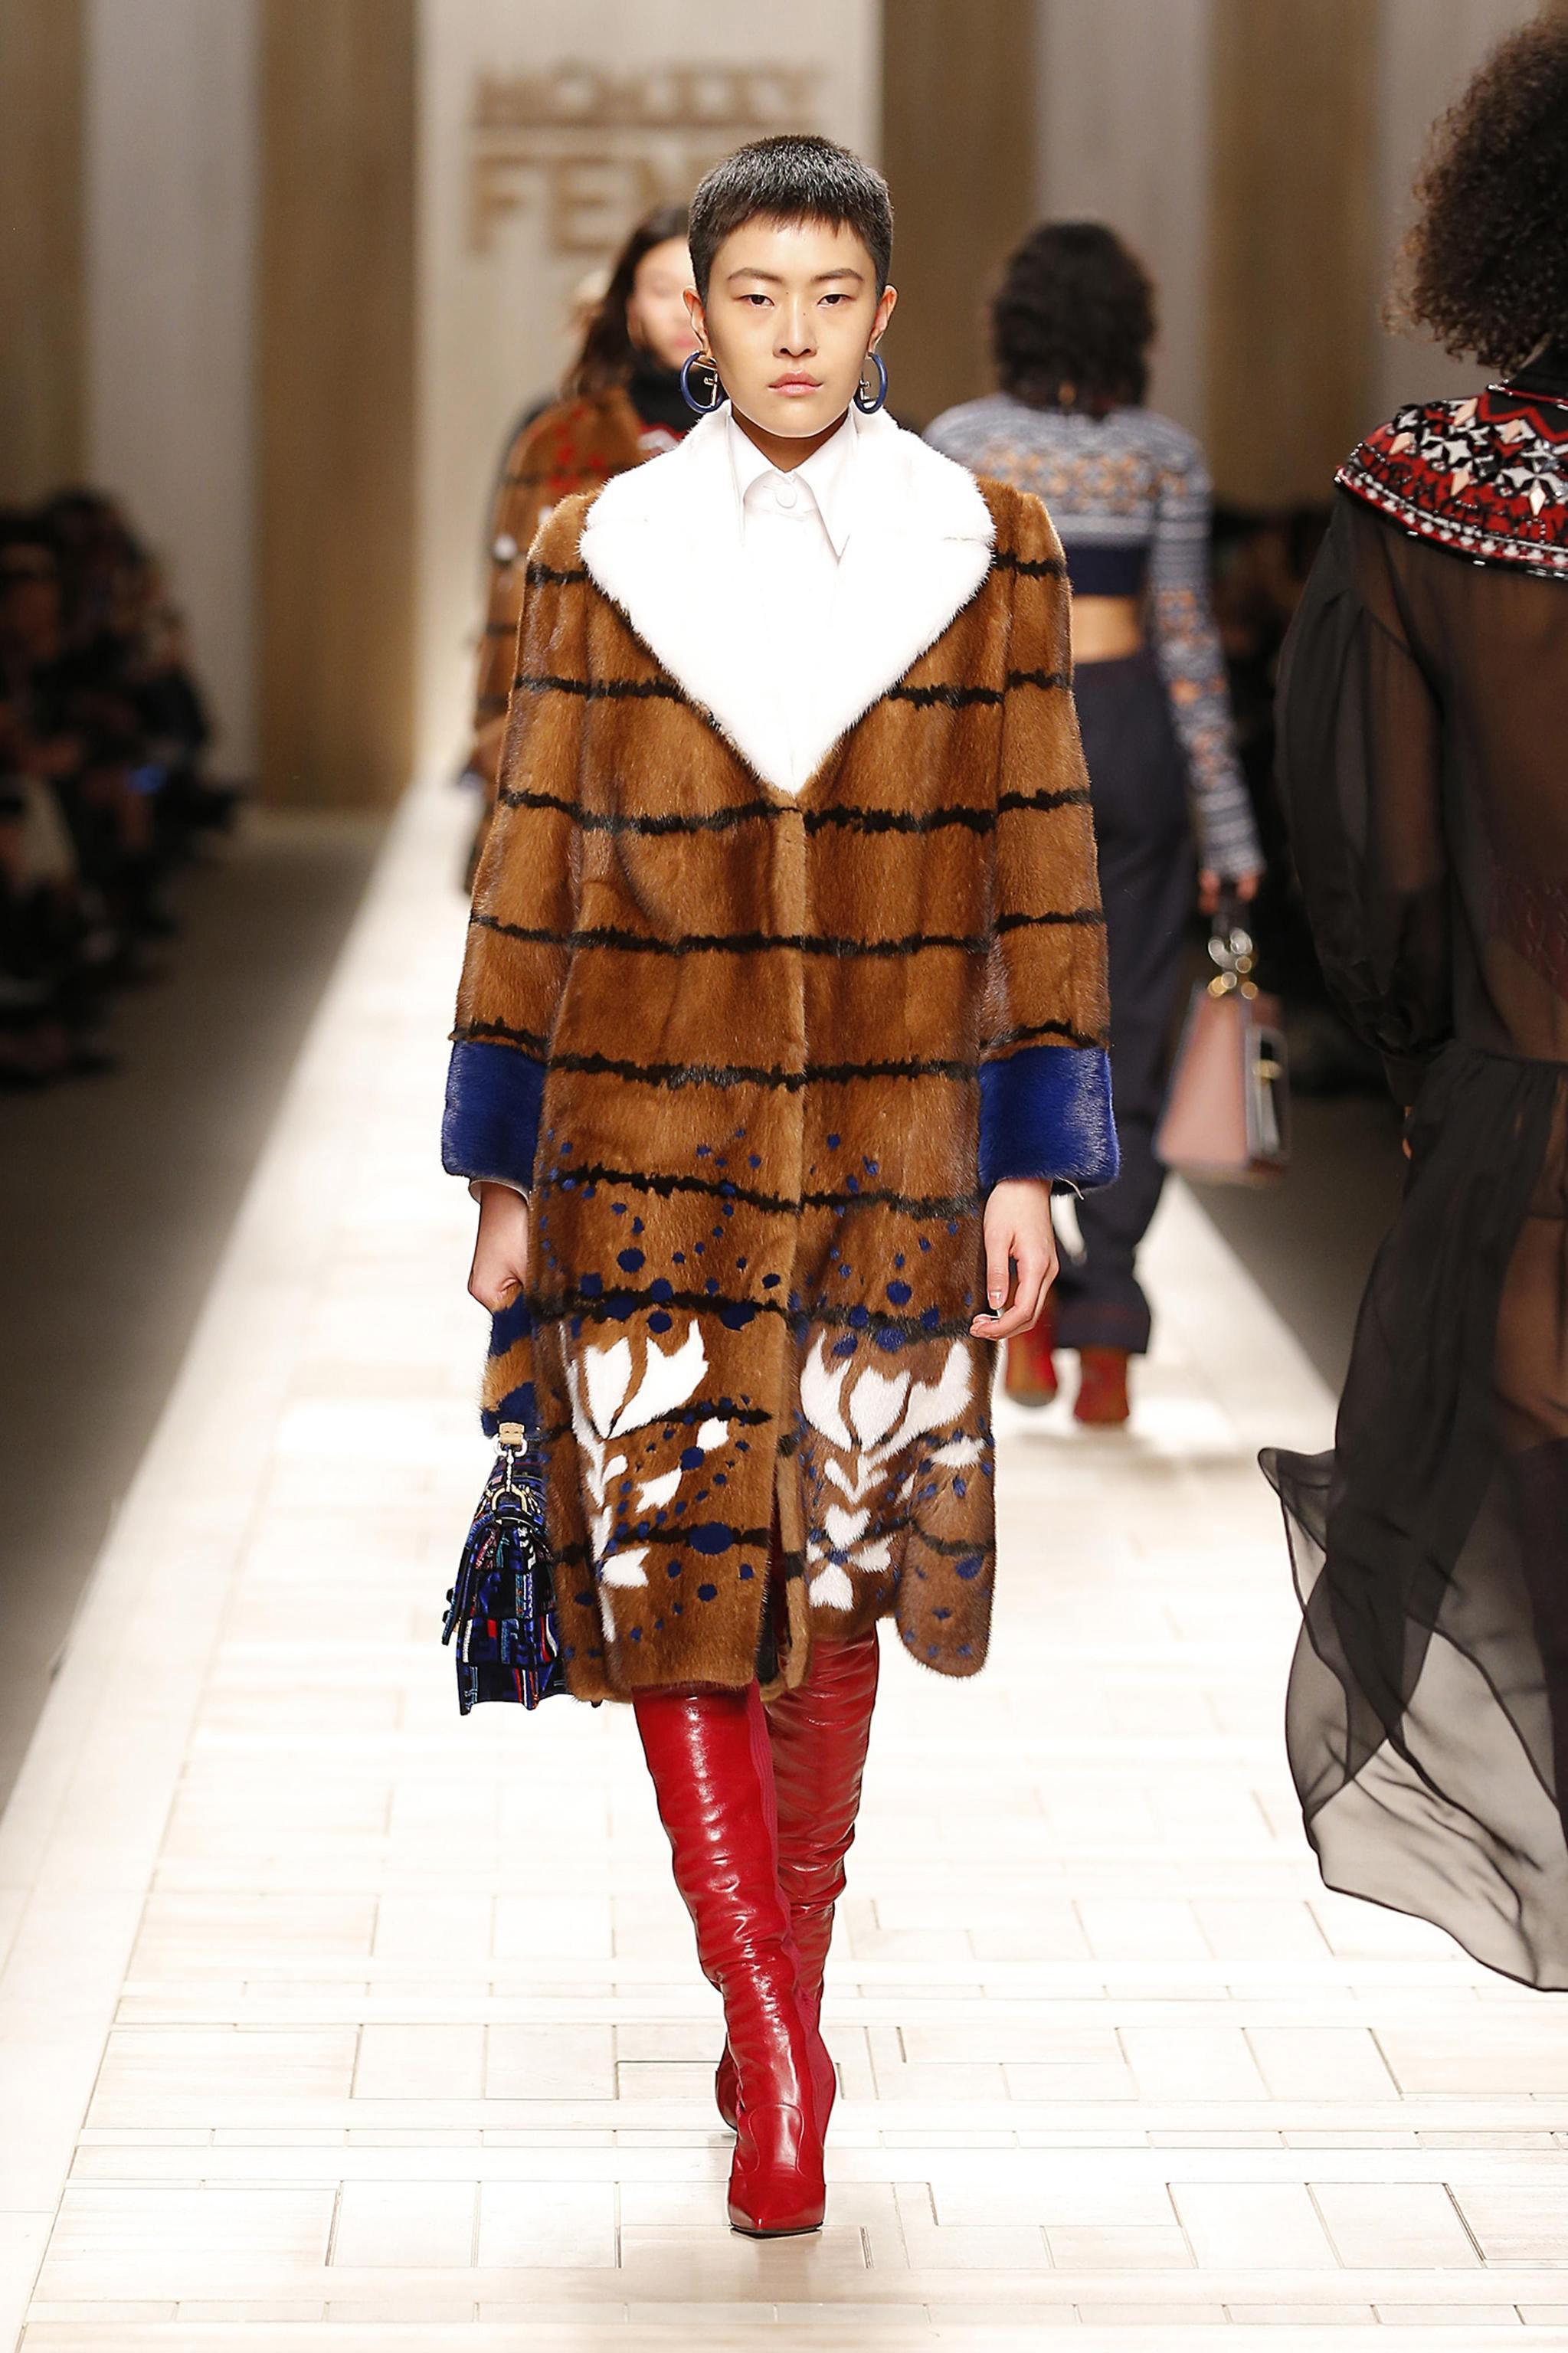 Fendi Runway Milan Fashion Week Women's Collections F/W 2017/2018